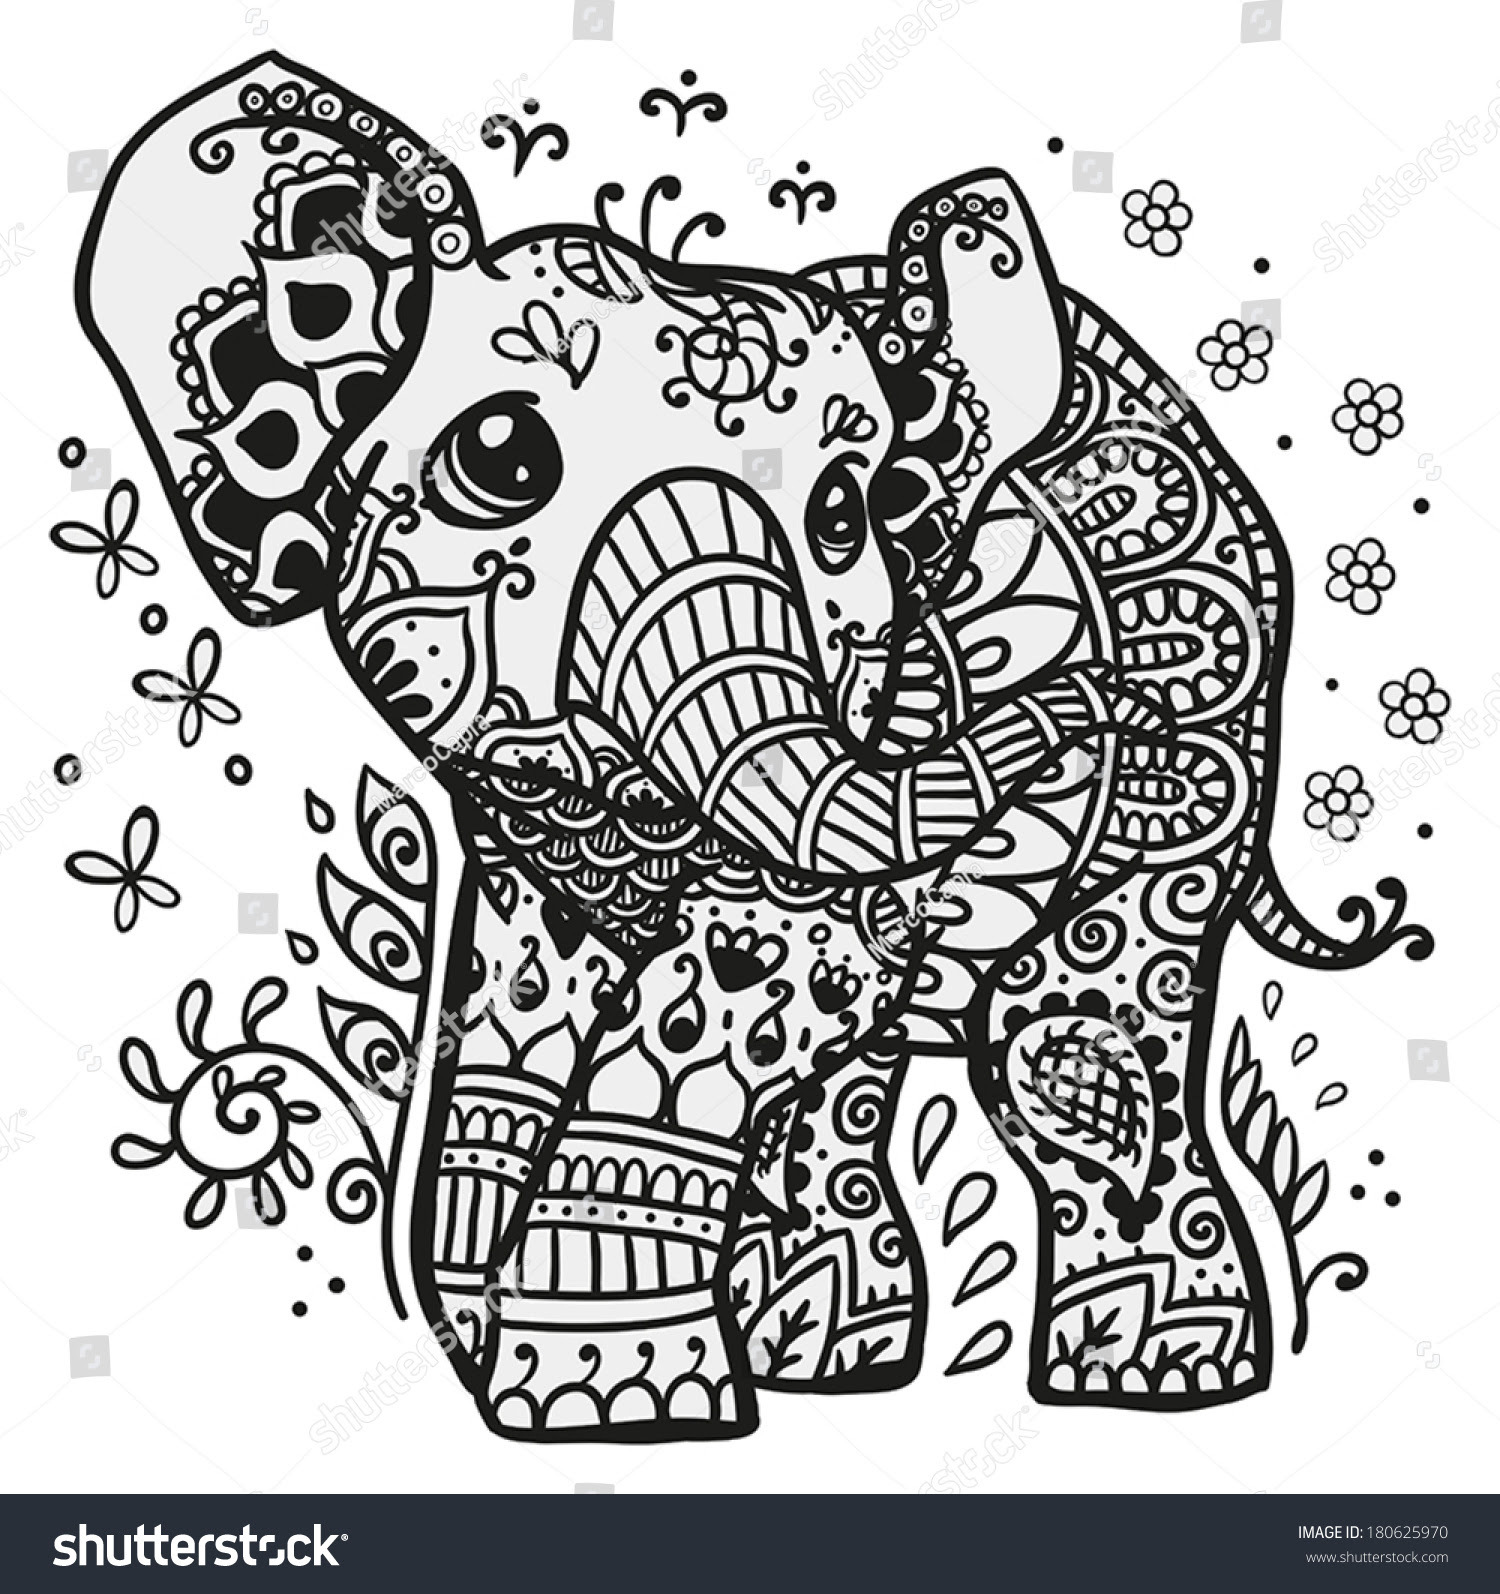 stock vector black and white vector illustration of a baby elephant with mandala drawn on his skin 180625970